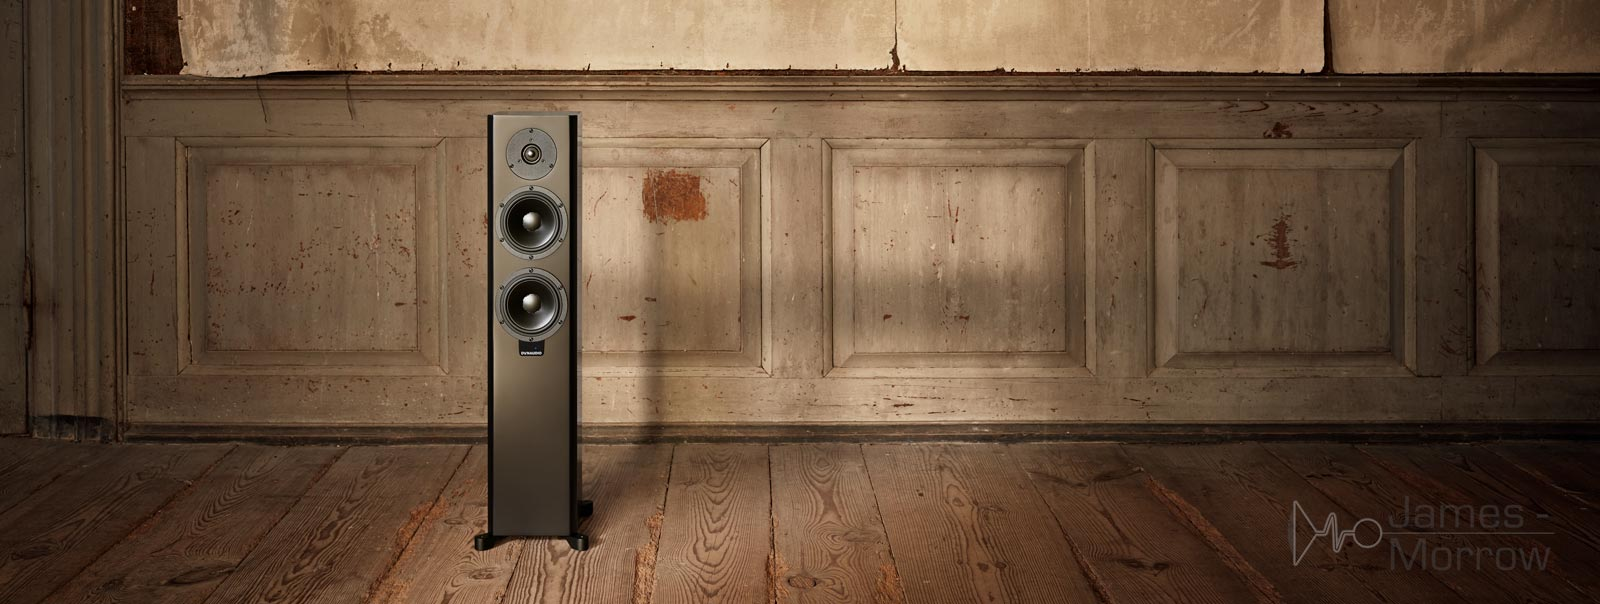 dynaudio xeo 30 black front wooden floor lifestyle image